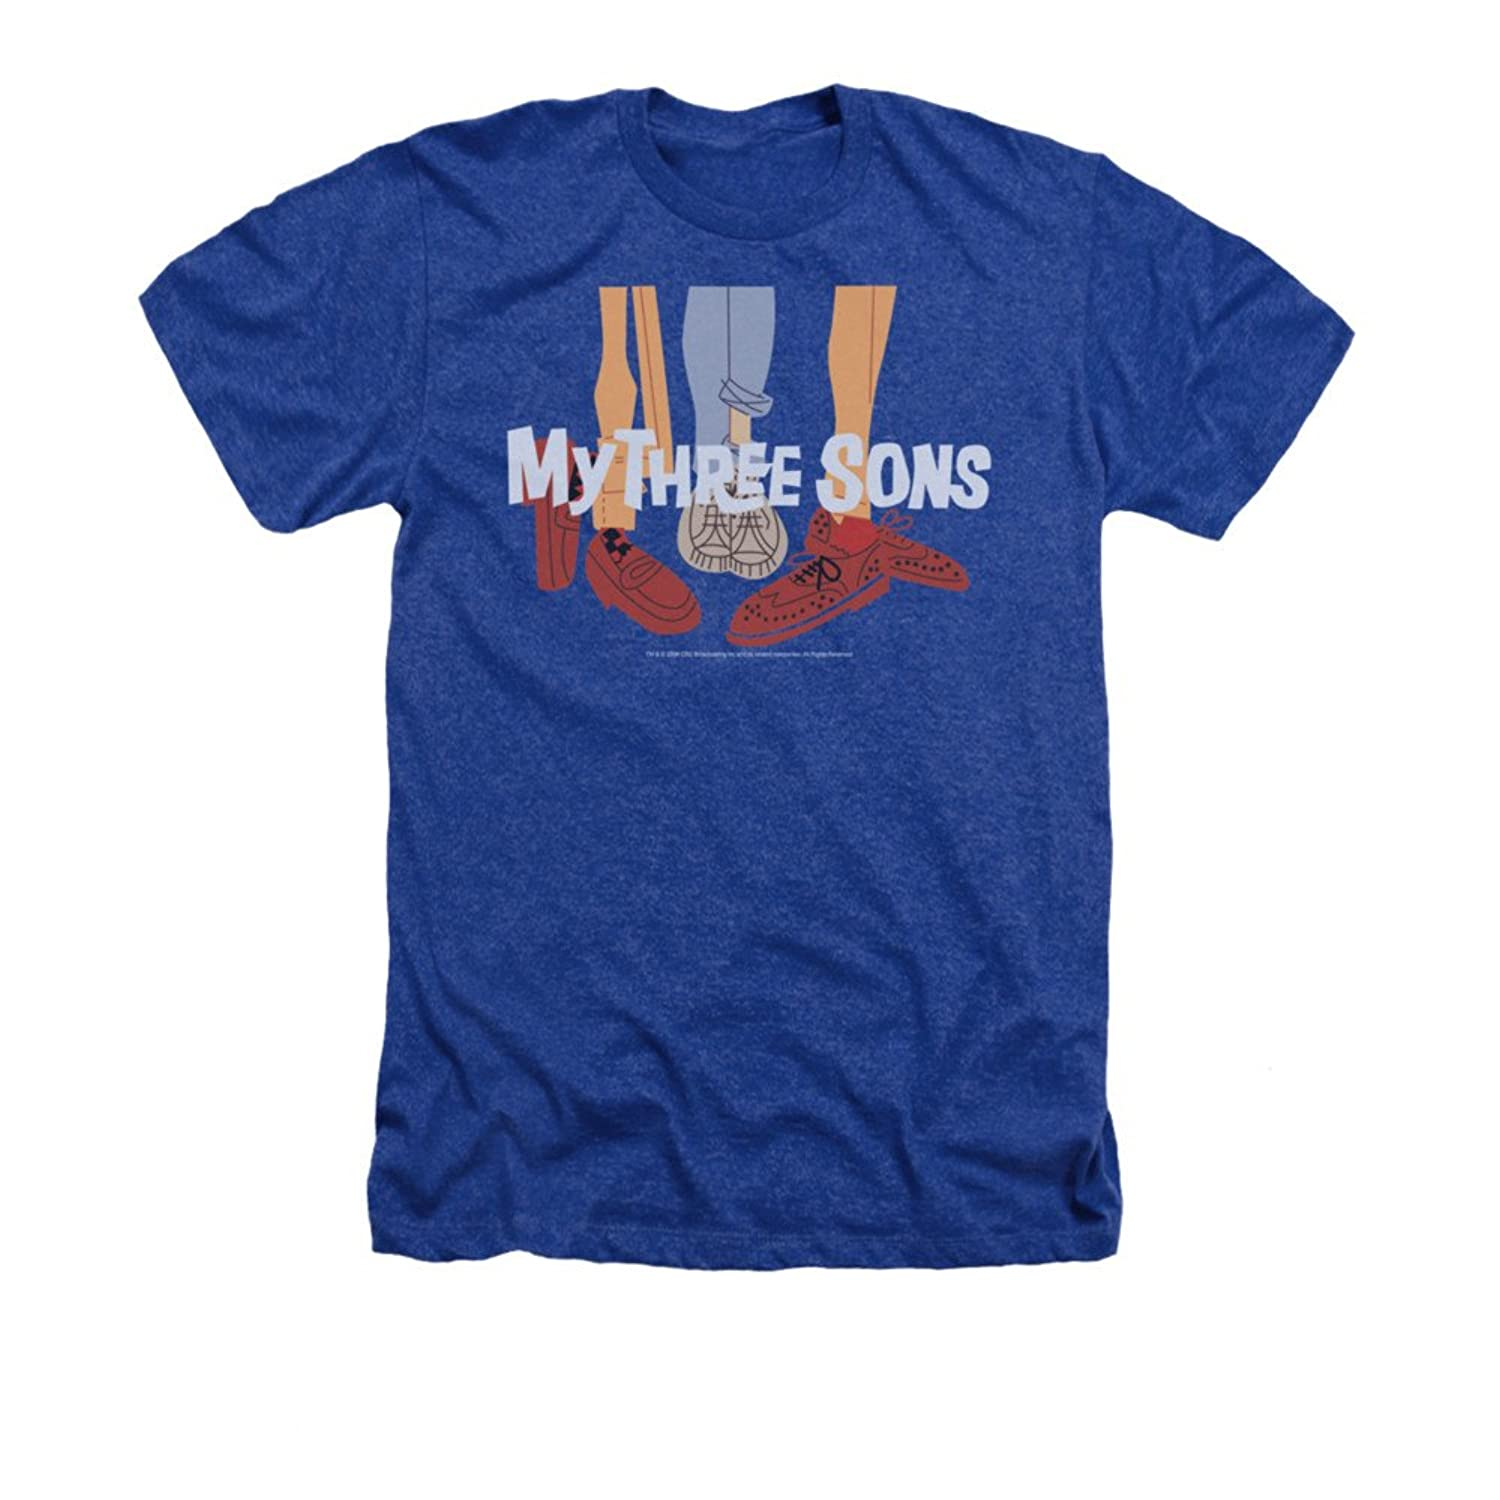 My Three Sons 60's CBS TV Series Shoes Logo Adult Heather T-Shirt Tee